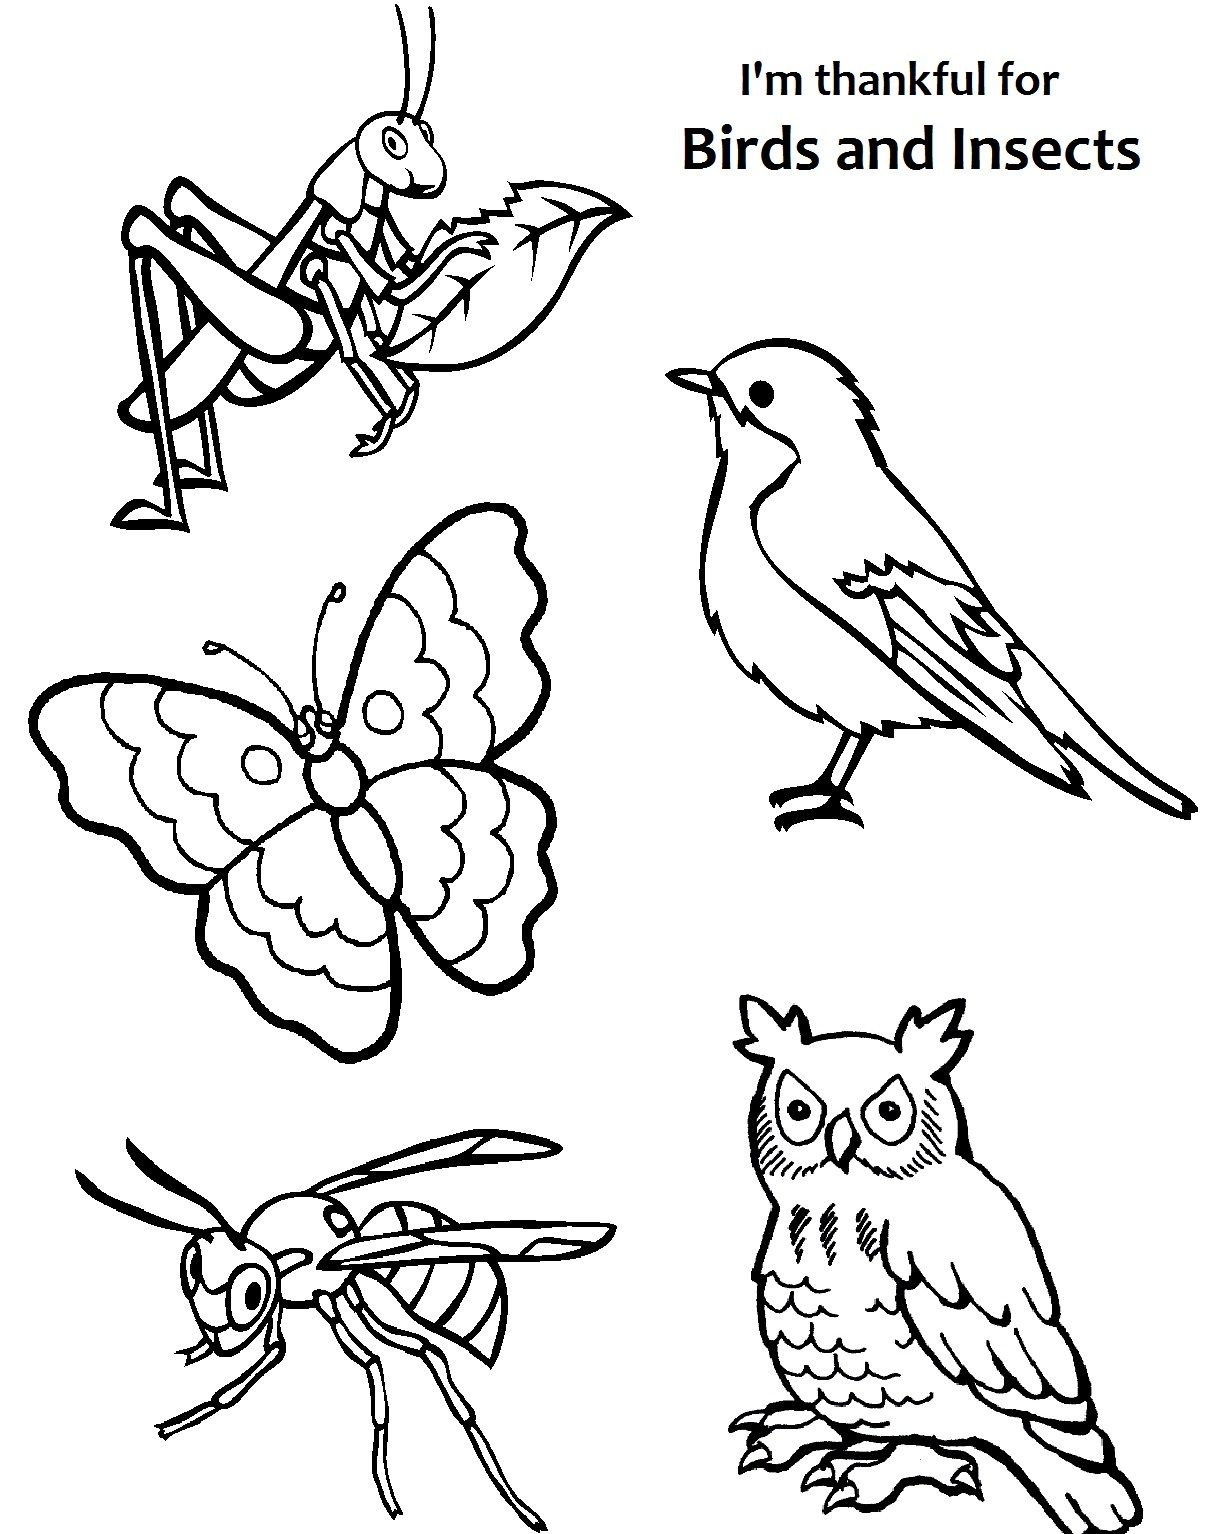 I Am Thankful For Birds And Insects Coloring Page